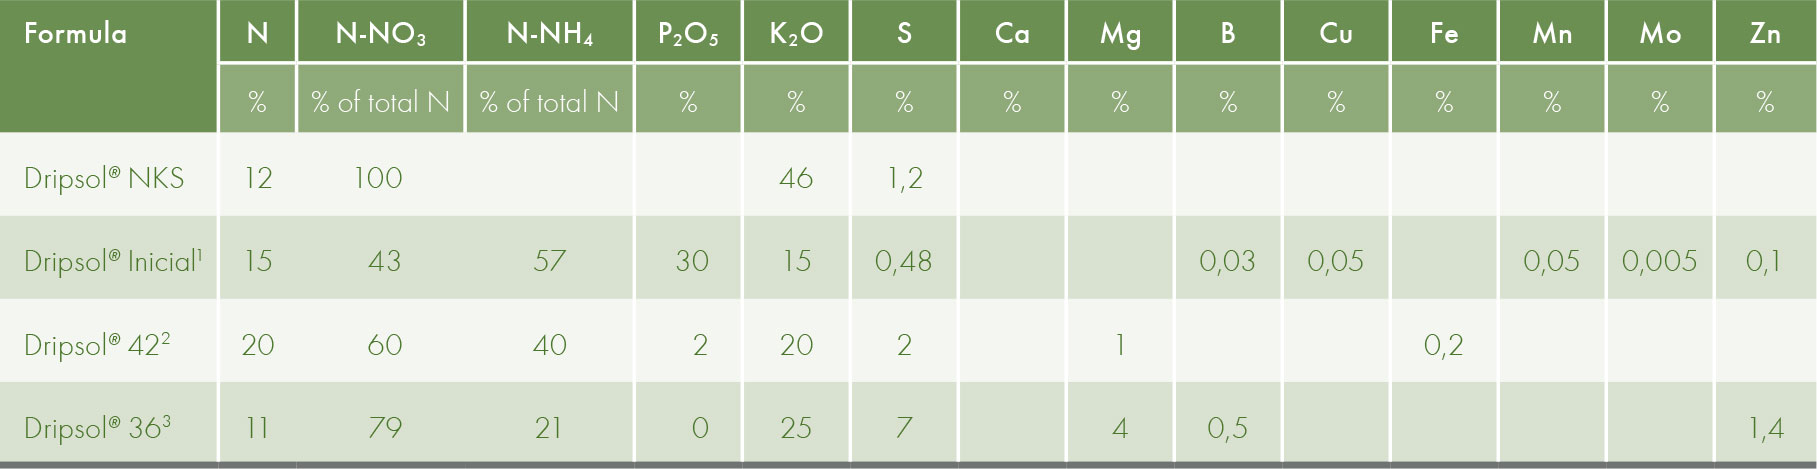 Specifications of fertilisers used in the fertirrigation of tobacco (% nutrients).